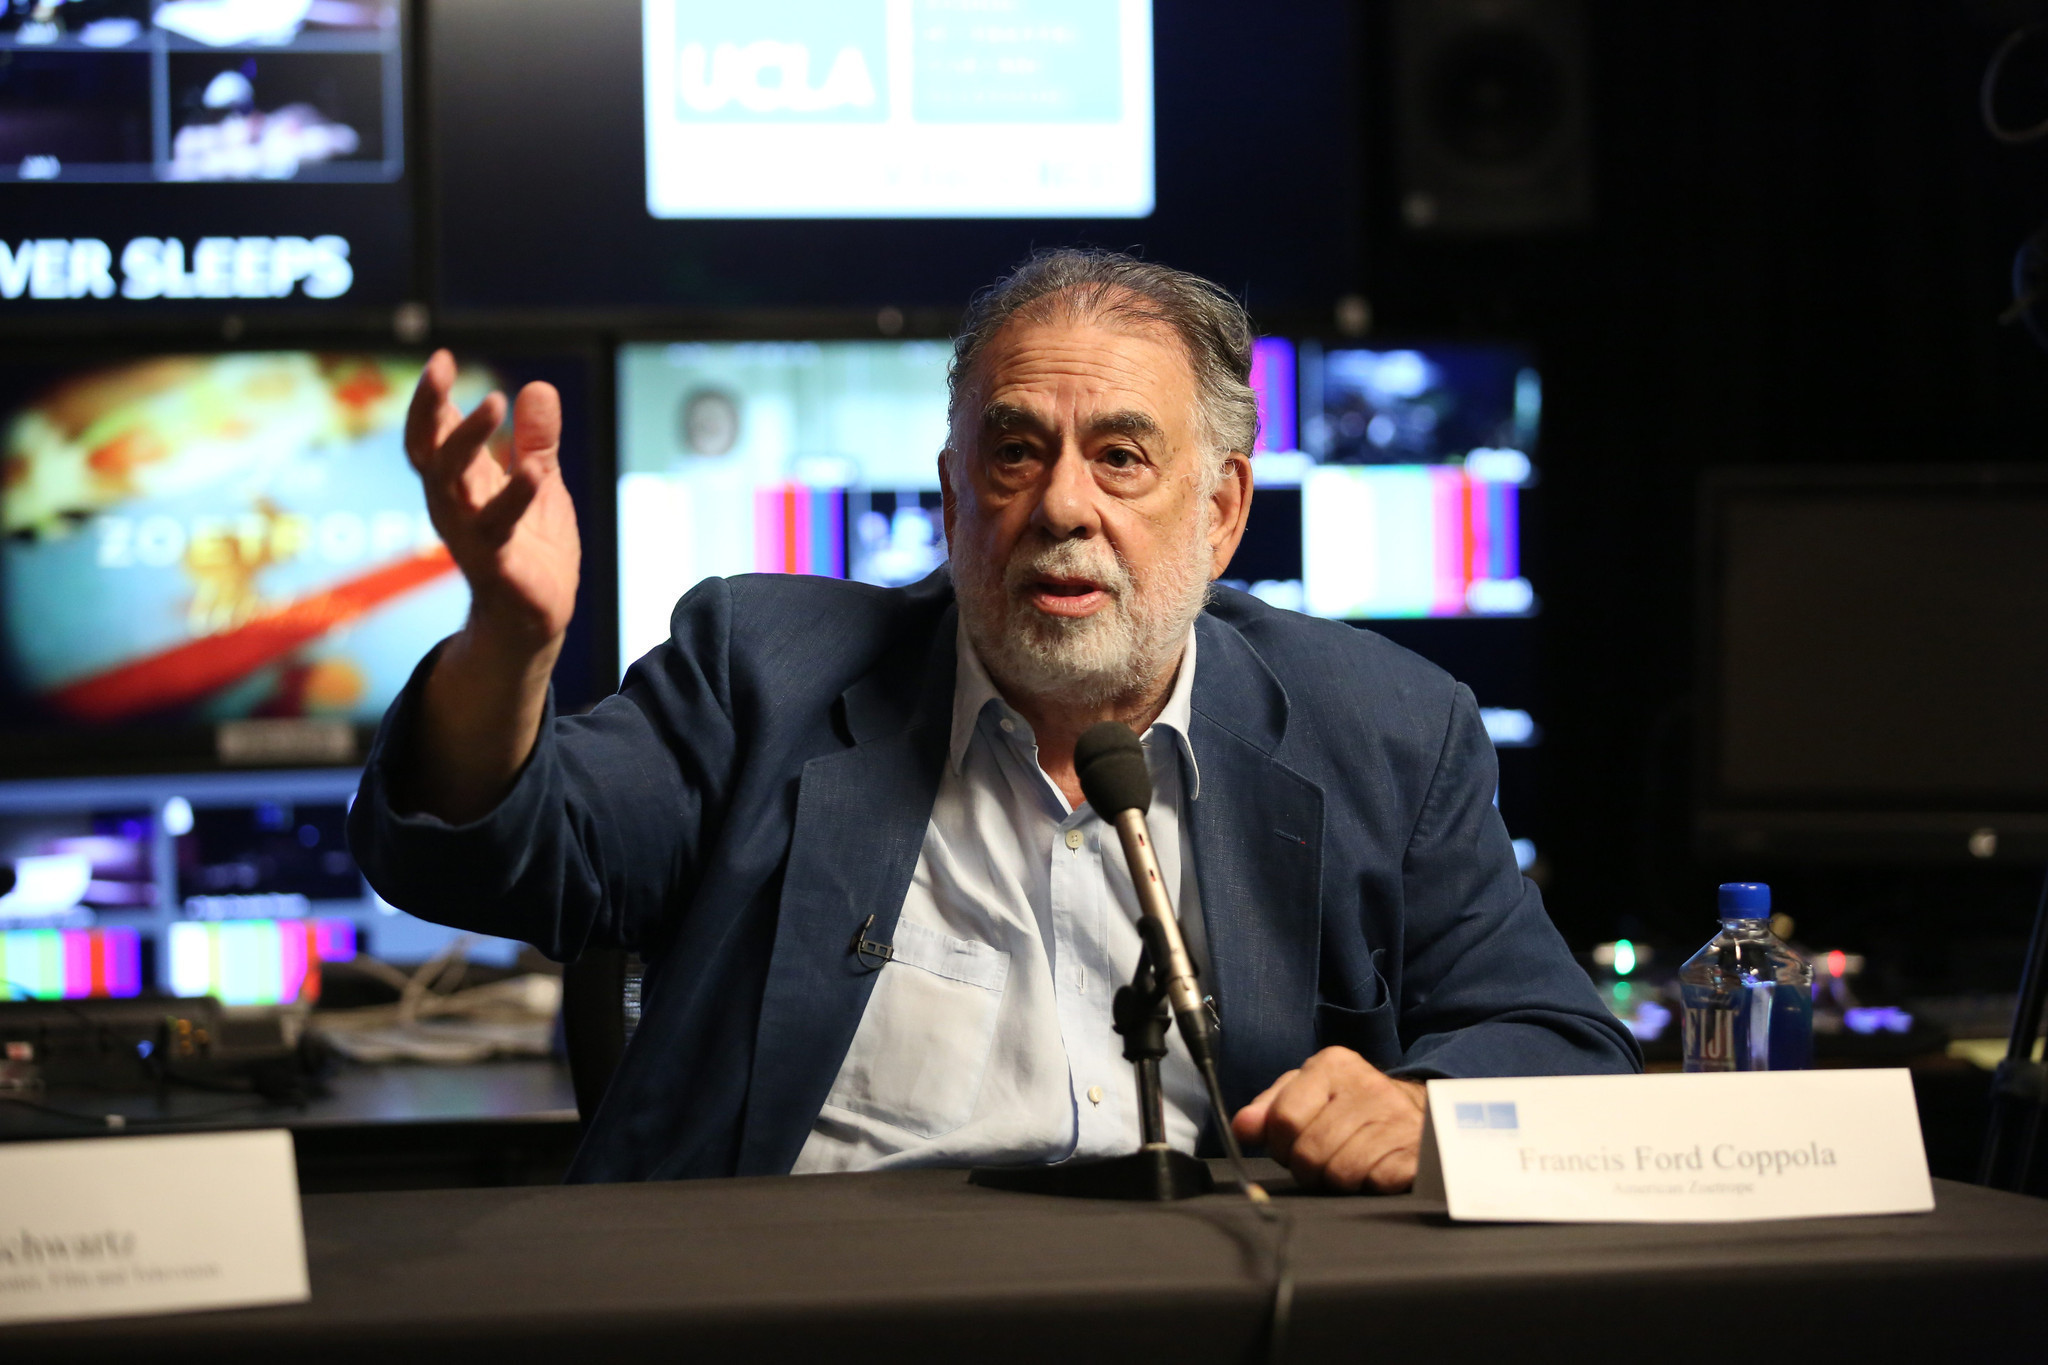 Francis Ford Coppola brings experimental 'Live Cinema' workshop to UCLA